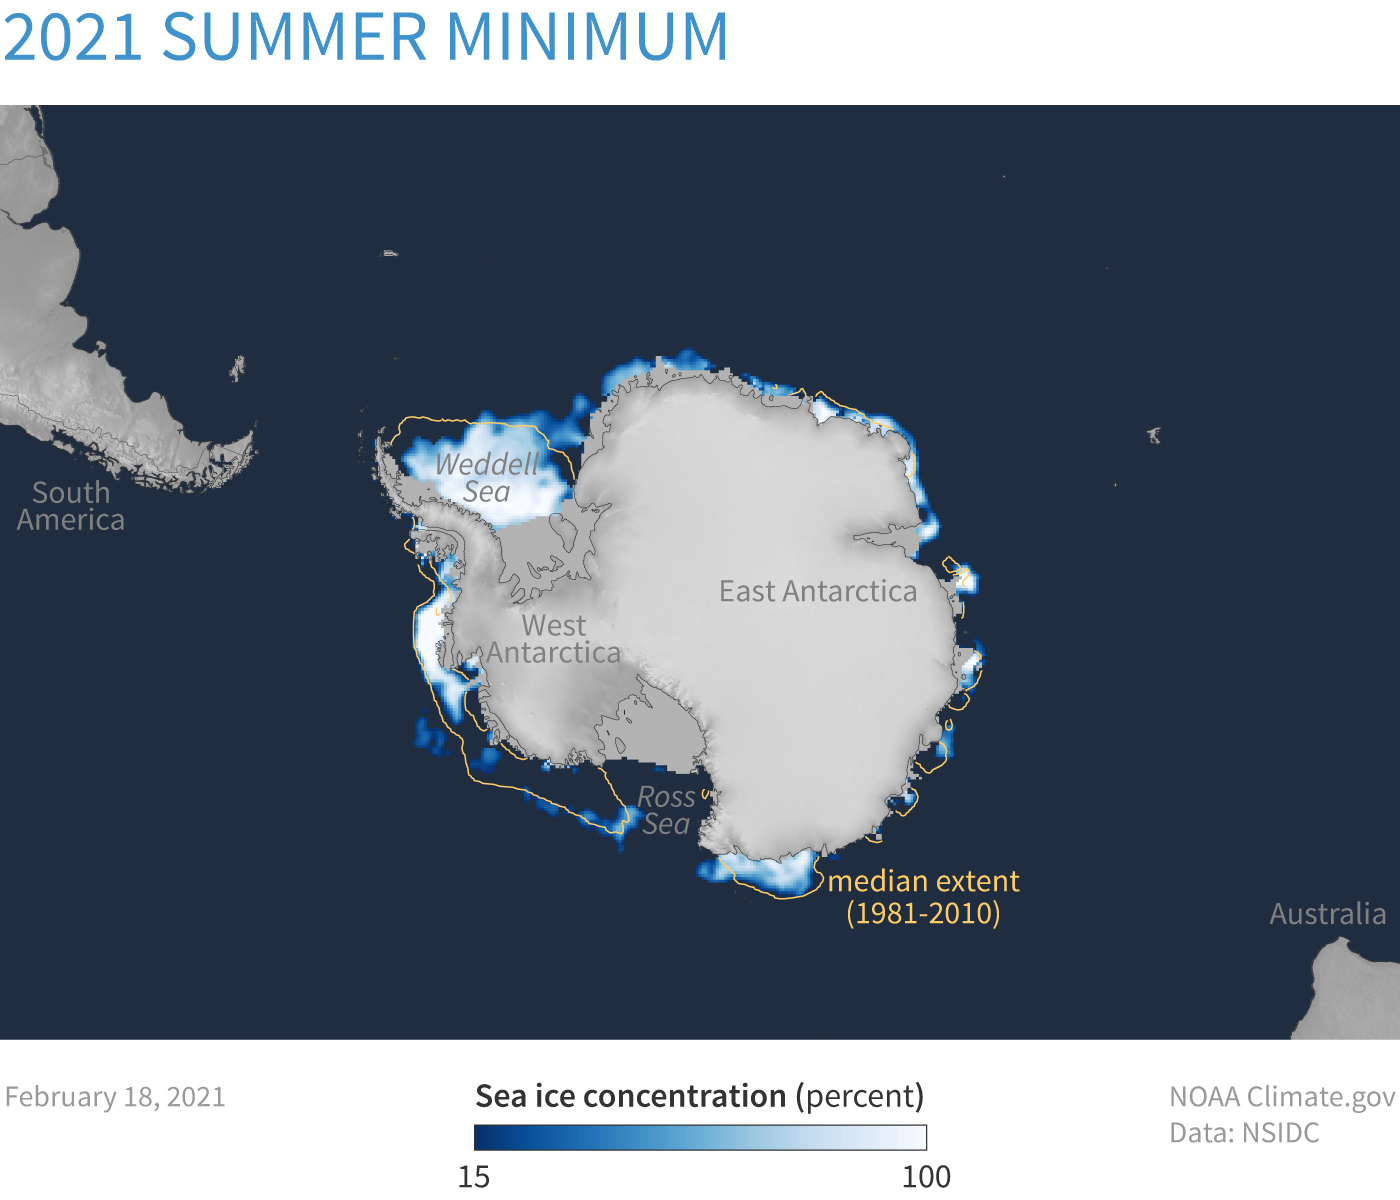 Map of sea ice concentration around Antarctica on February 18, 2021, near the summer minimum